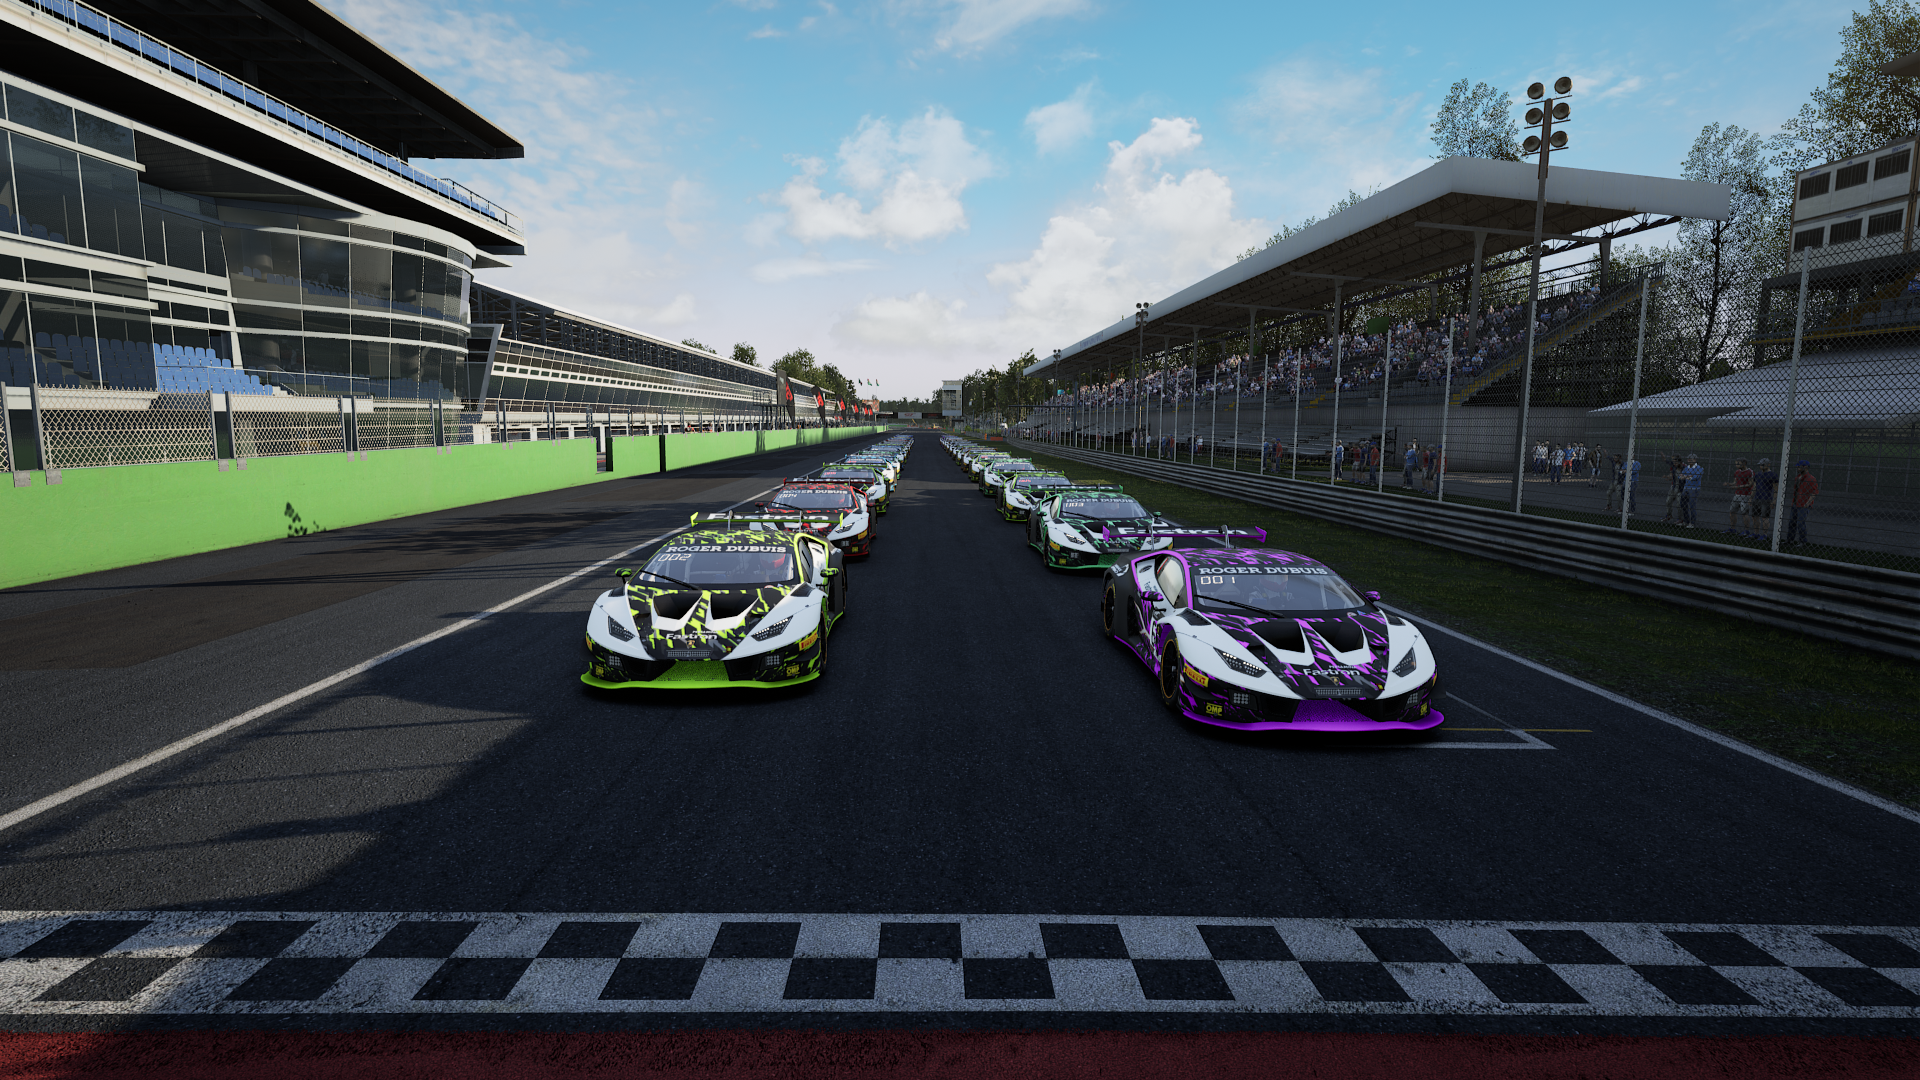 Lamborghini enters esports for first time with The Real Race tournament